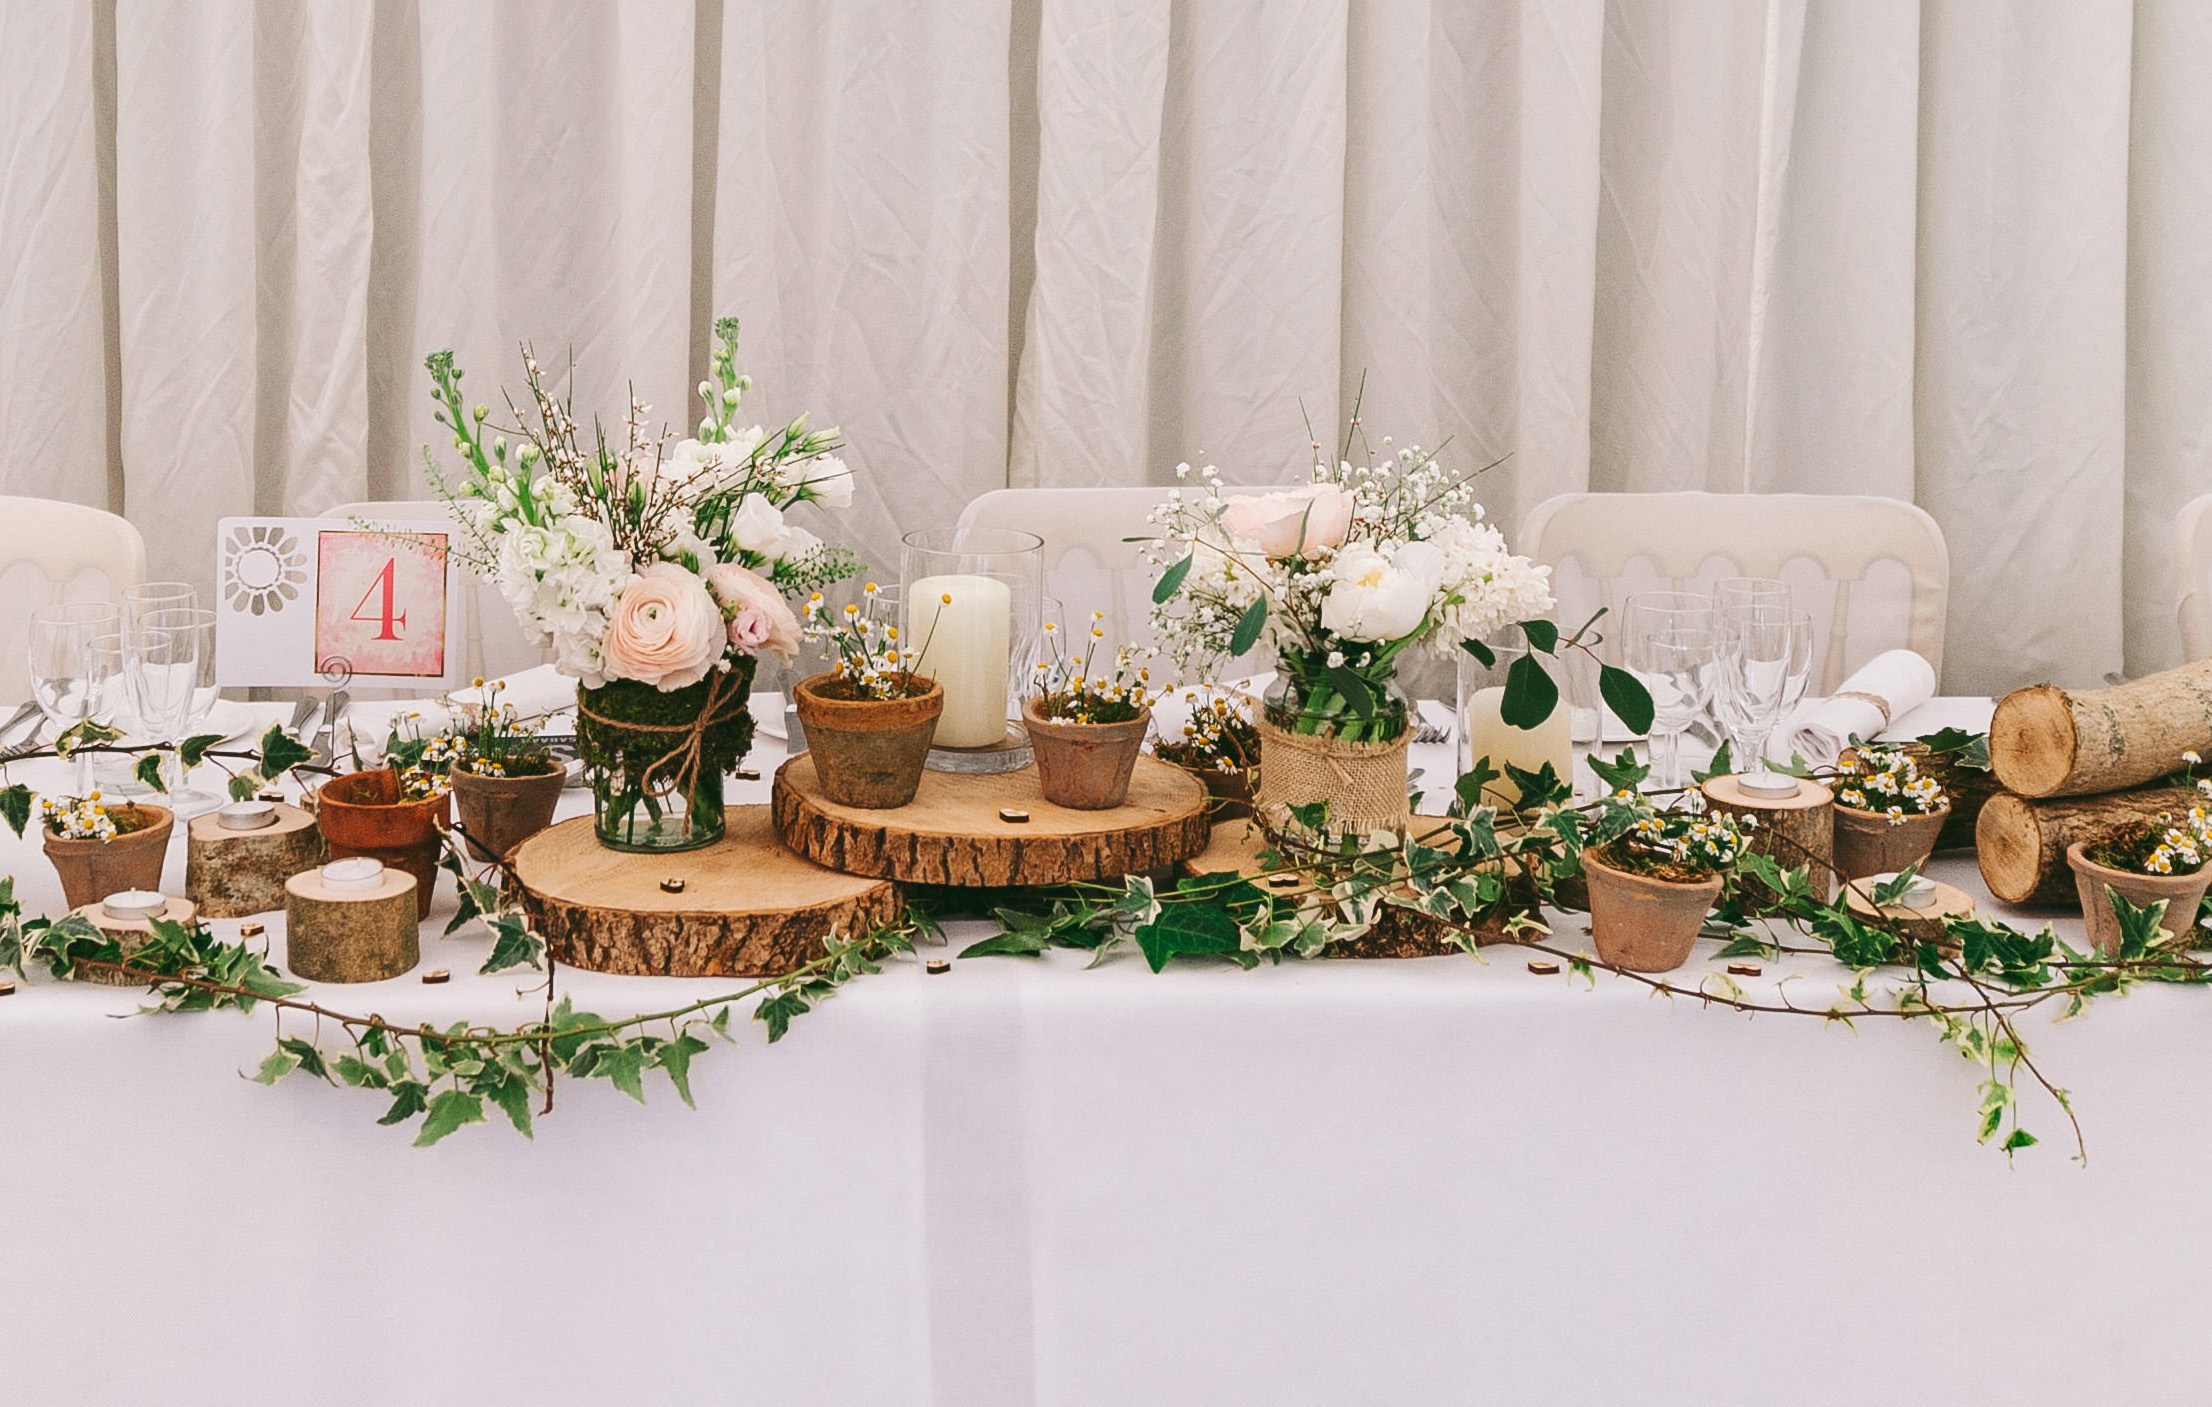 Amazing Rustic Woodland Wedding Top Table Ideas - Shop The Look